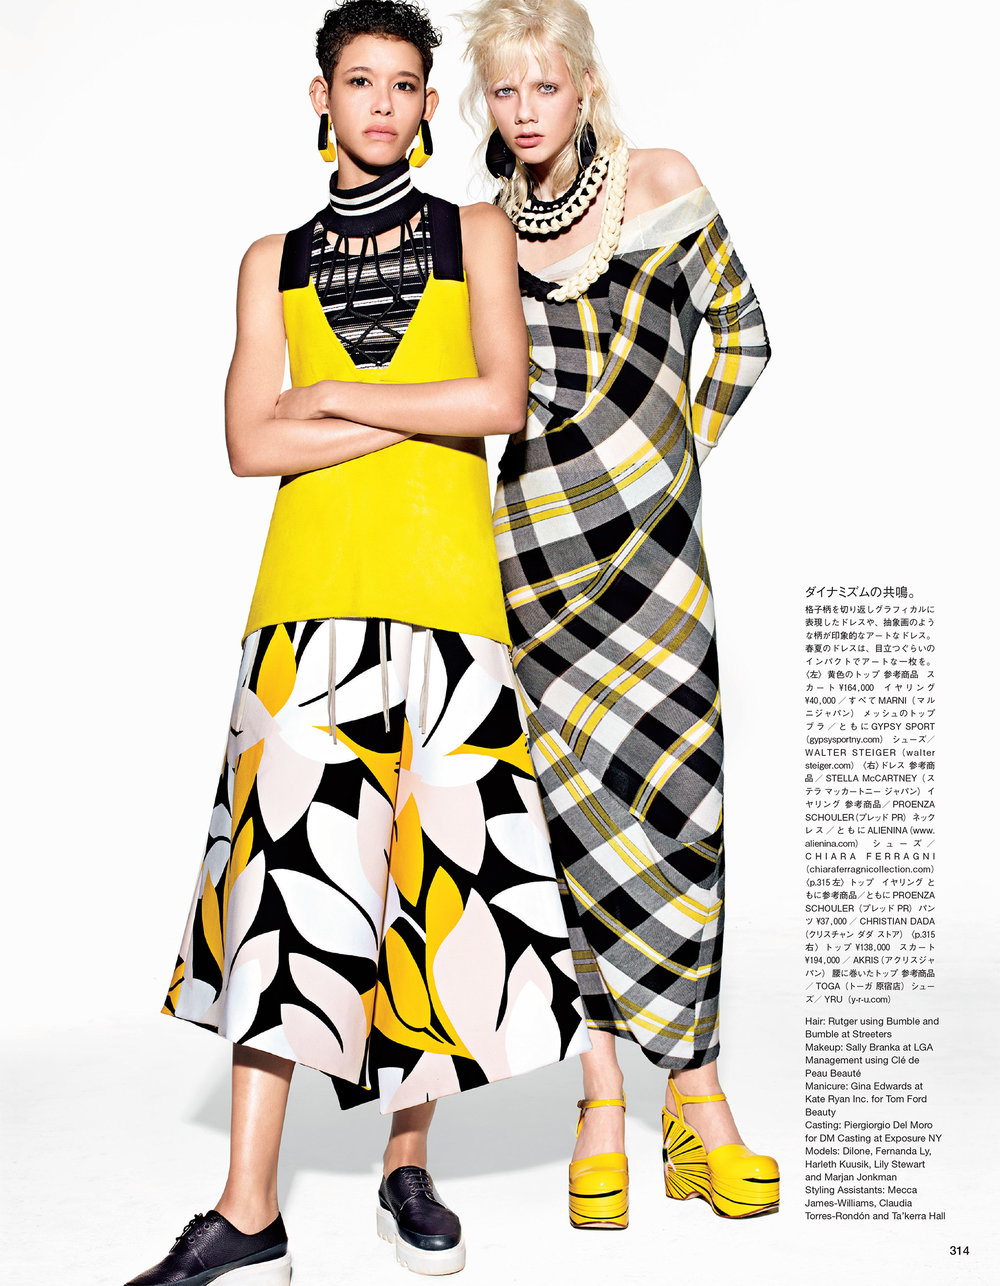 Giovanna-Battaglia-Vogue-Japan-The-Geek-Girls-Society-Richard-Brubridge-8.jpg